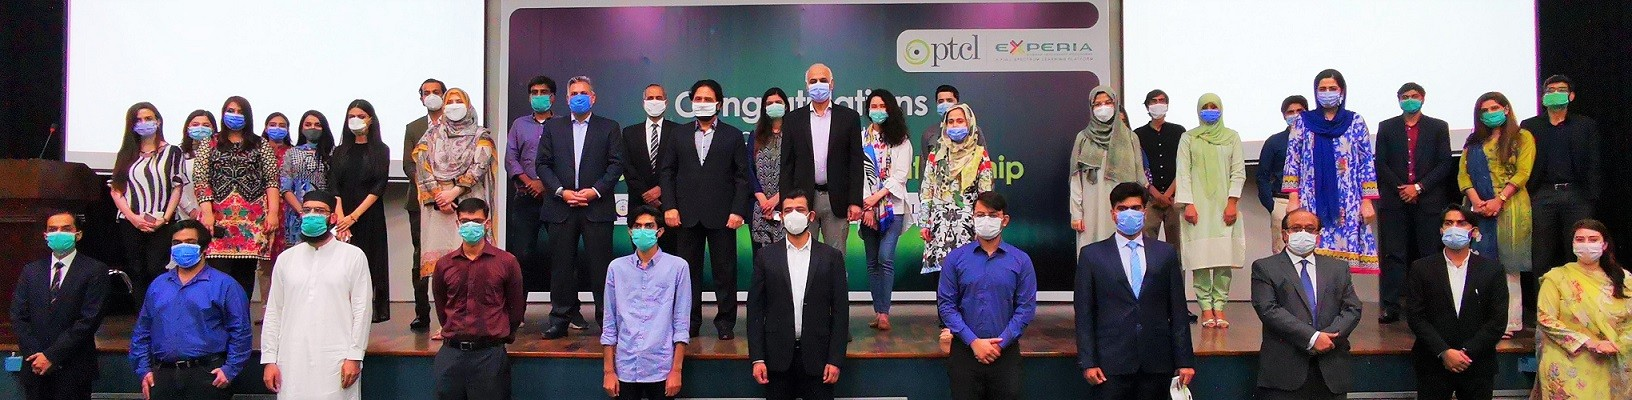 """PTCL internship program Experia 2020 - Pakistan Telecommunication Company Limited (PTCL) successfully concluded its flagship internship program Experia 2020 with a closing ceremony held at the PTCL HQ in Islamabad. Despite the ongoing pandemic, the company engaged with the students virtually and provided them with ample learning opportunities and mentorship. For this flagship program, 25 students from well-renowned universities such as LUMS, IBA Karachi, NUST, FAST and Bahria University were selected out of 1200 students through online Gamified Assessment. On the occasion, Syed Mazhar Hussain, Group Chief Human Resource Officer, PTCL & Ufone, said, """"Our commitment to the youth of Pakistan remains strong as we create ample opportunities of learning and mentoring. Experia is one of the flagship internship program at PTCL, where we nurture and groom the best talent from various universities in Pakistan. We made efforts to ensure that this program continues in its true spirit even in COVID-19 by adding virtual mechanism in place."""" Selected students were given an online orientation of a detailed six-week plan and were assigned to their respective projects and departments. As part of Experia's holistic learning, the interns were provided access to PTCL's internal Learning Management System known as 'LearnX' along with a recommended in-house built program 'Developing Managerial Skills'. They were also given exclusive access to world renowned Digital Learning Platform 'LinkedIn Learning,' which they will continue to access and learn from even after their internship. In a fun and innovative way, the interns were given an opportunity to learn about PTCL's culture, Code of Conduct, CSR initiatives and its Corporate Values. They were also given virtual tours of the Network Operations Center, Telephone Exchange, Smart Shop and Data Centers. The final presentations took place online with the top three students presenting their projects during the closing ceremony. The students we"""